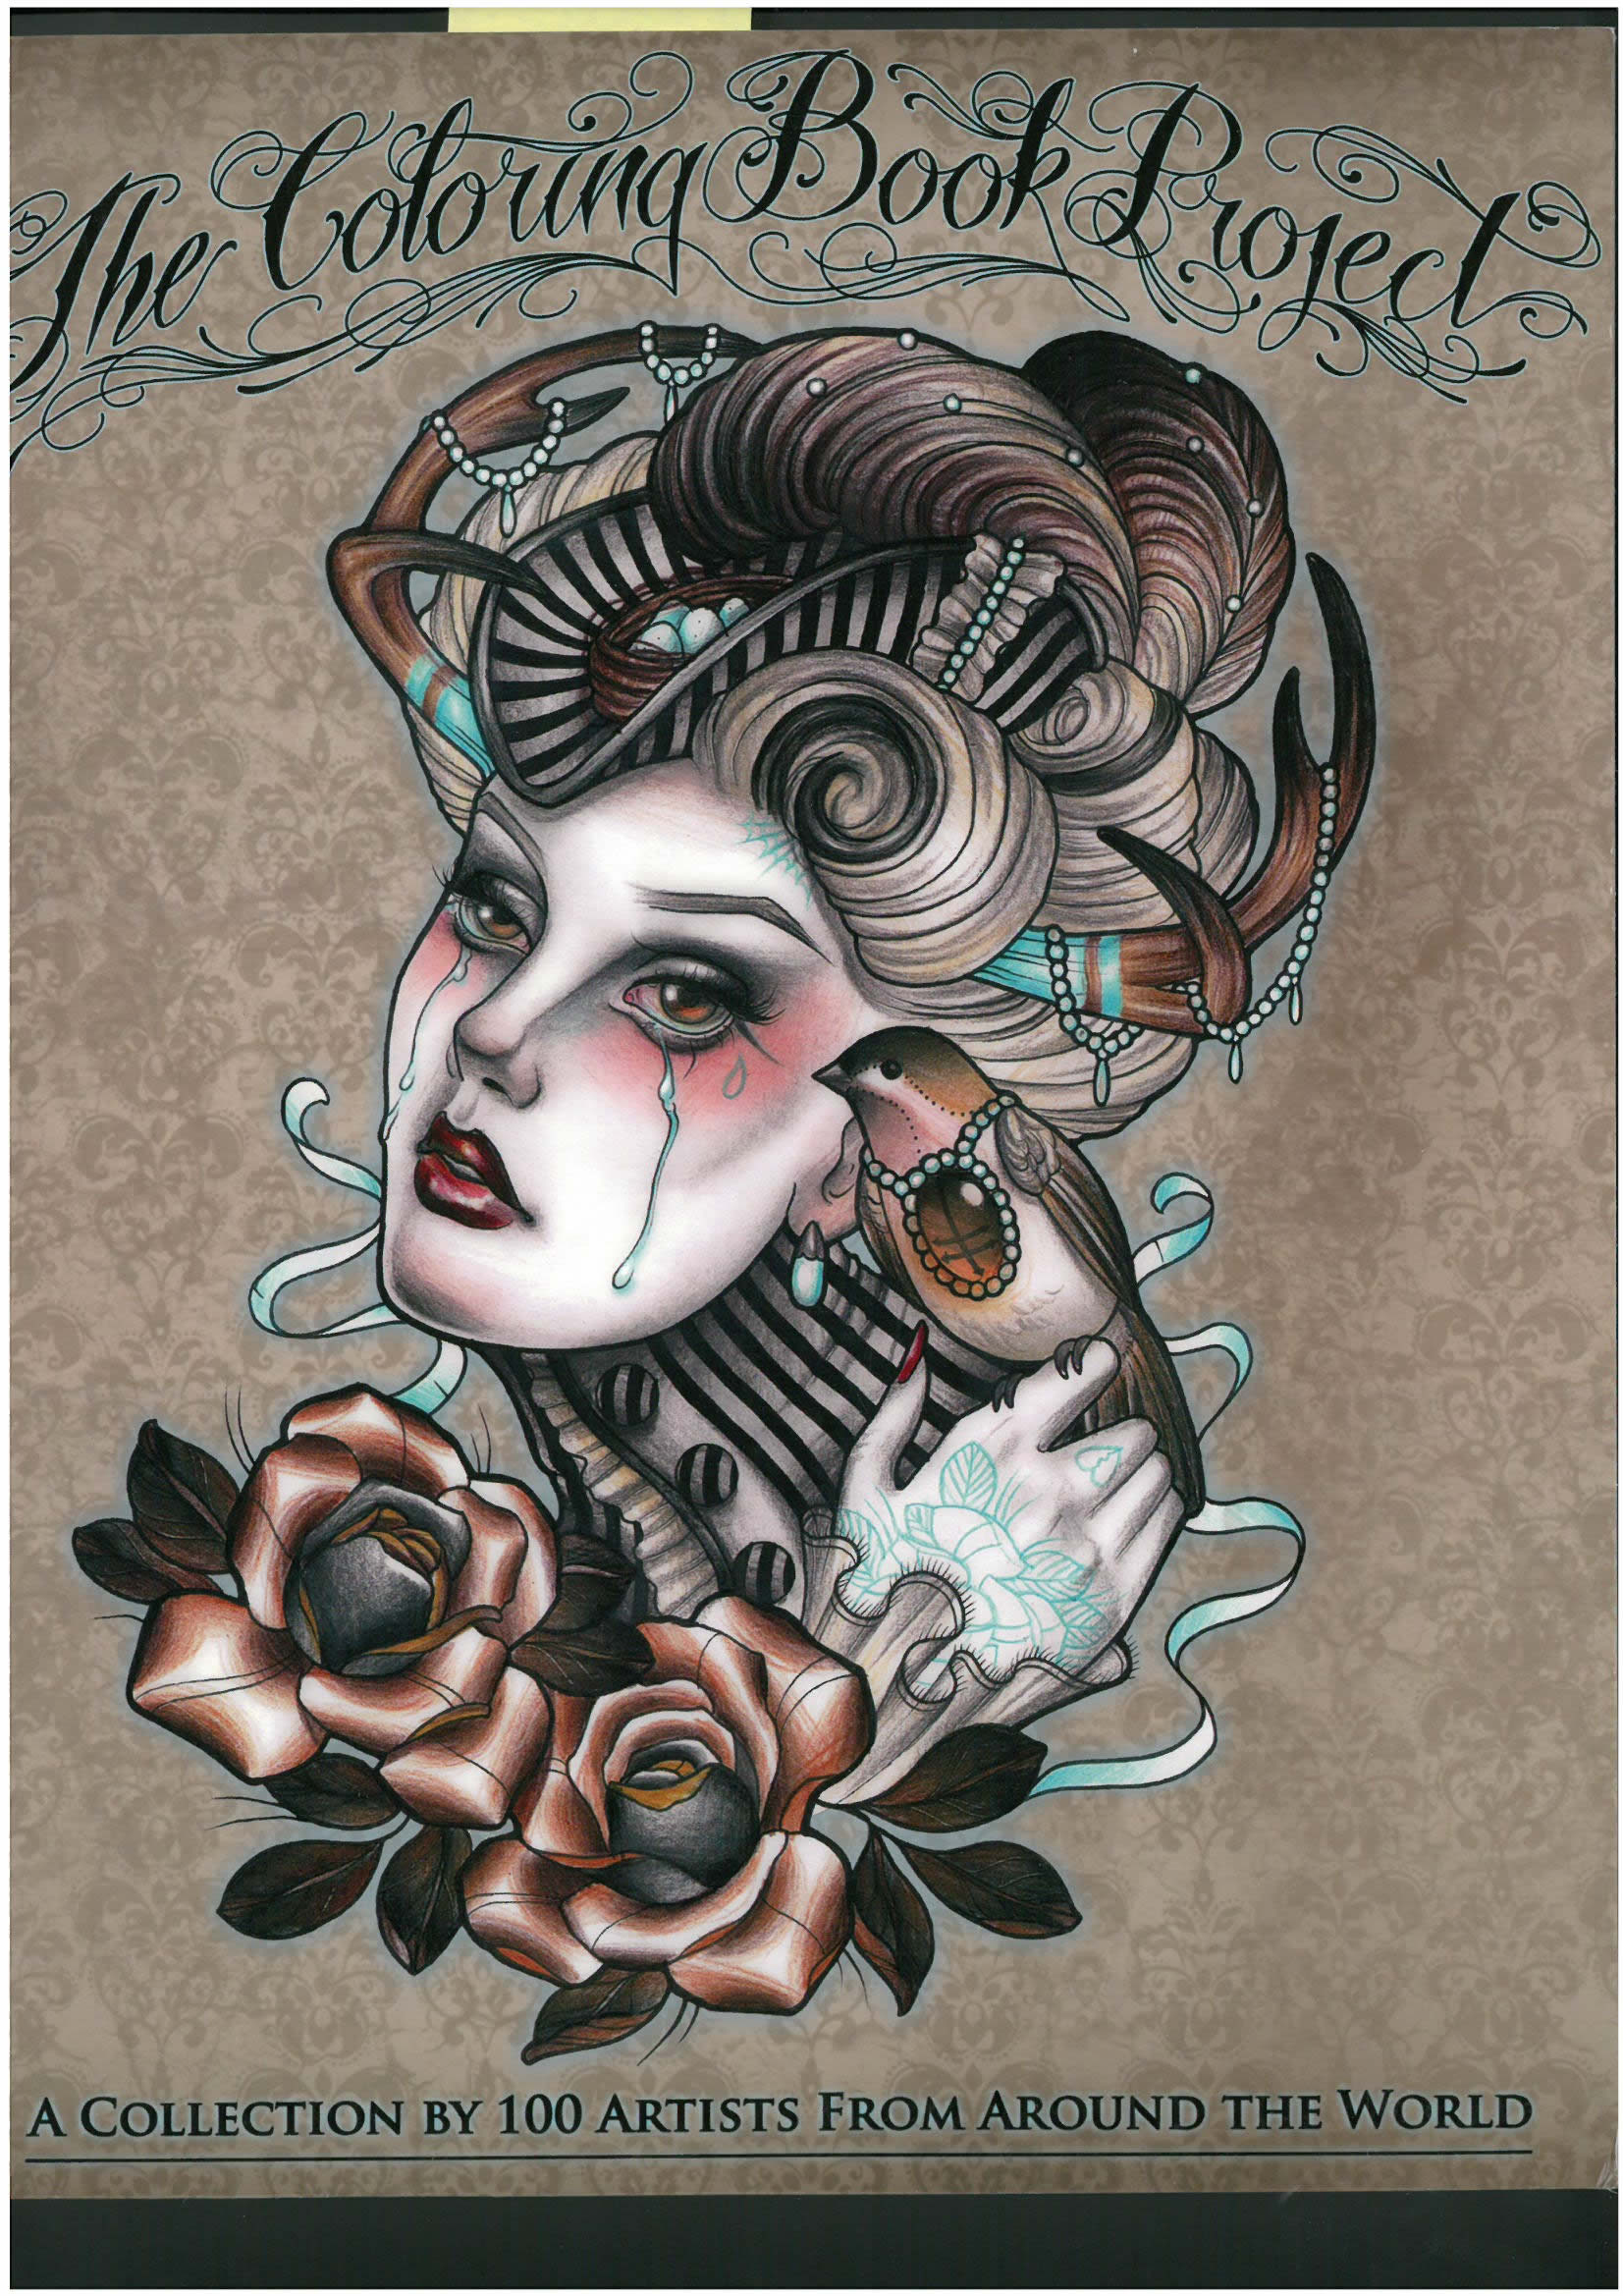 B�cher - Ver�ffentlichungen - THE COLORING BOOK PROJECT - 2012